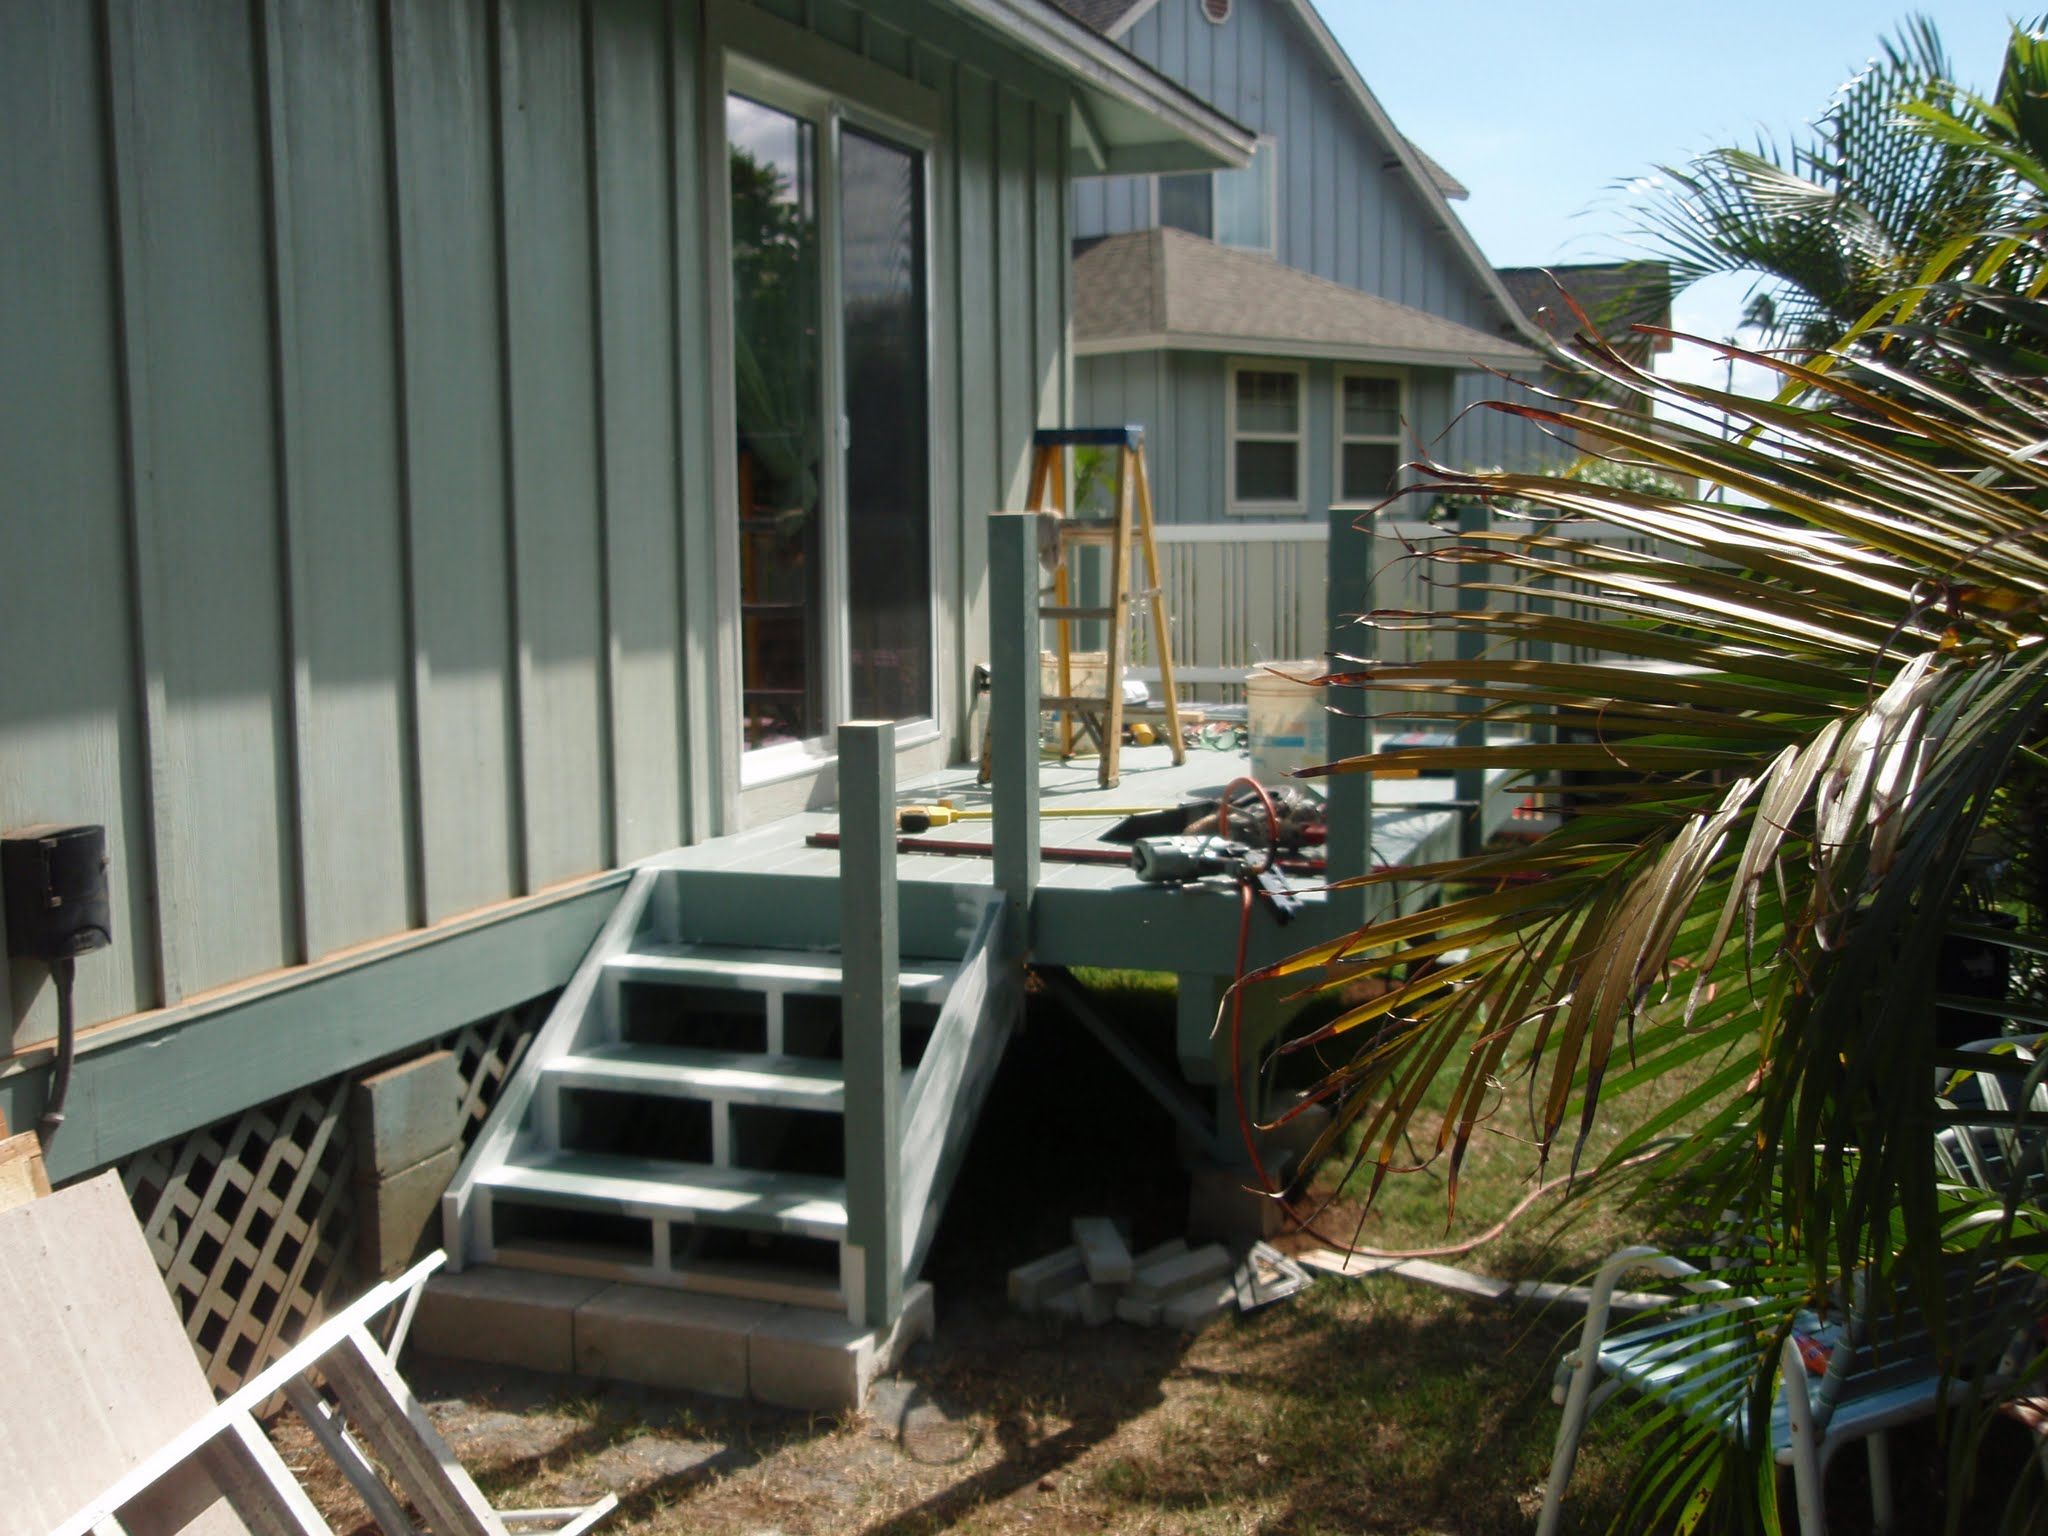 Stairs down from deck 2